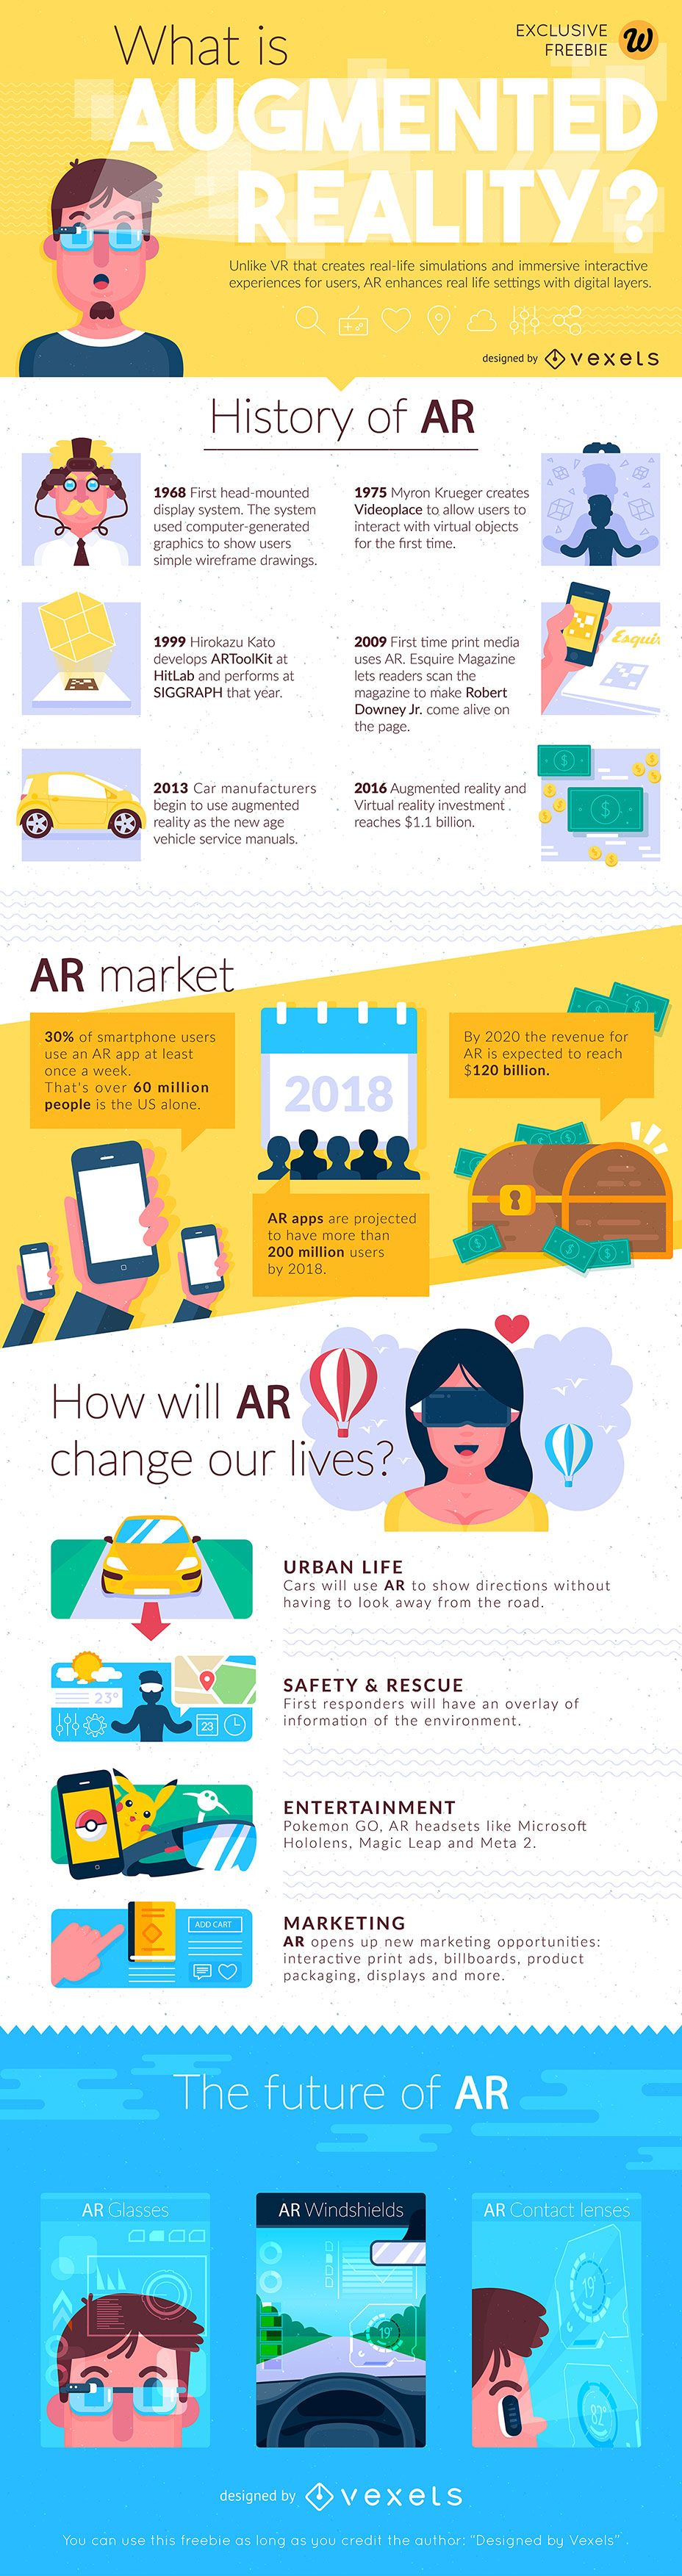 Best 25+ Augmented reality ideas on Pinterest | Augmented reality ...